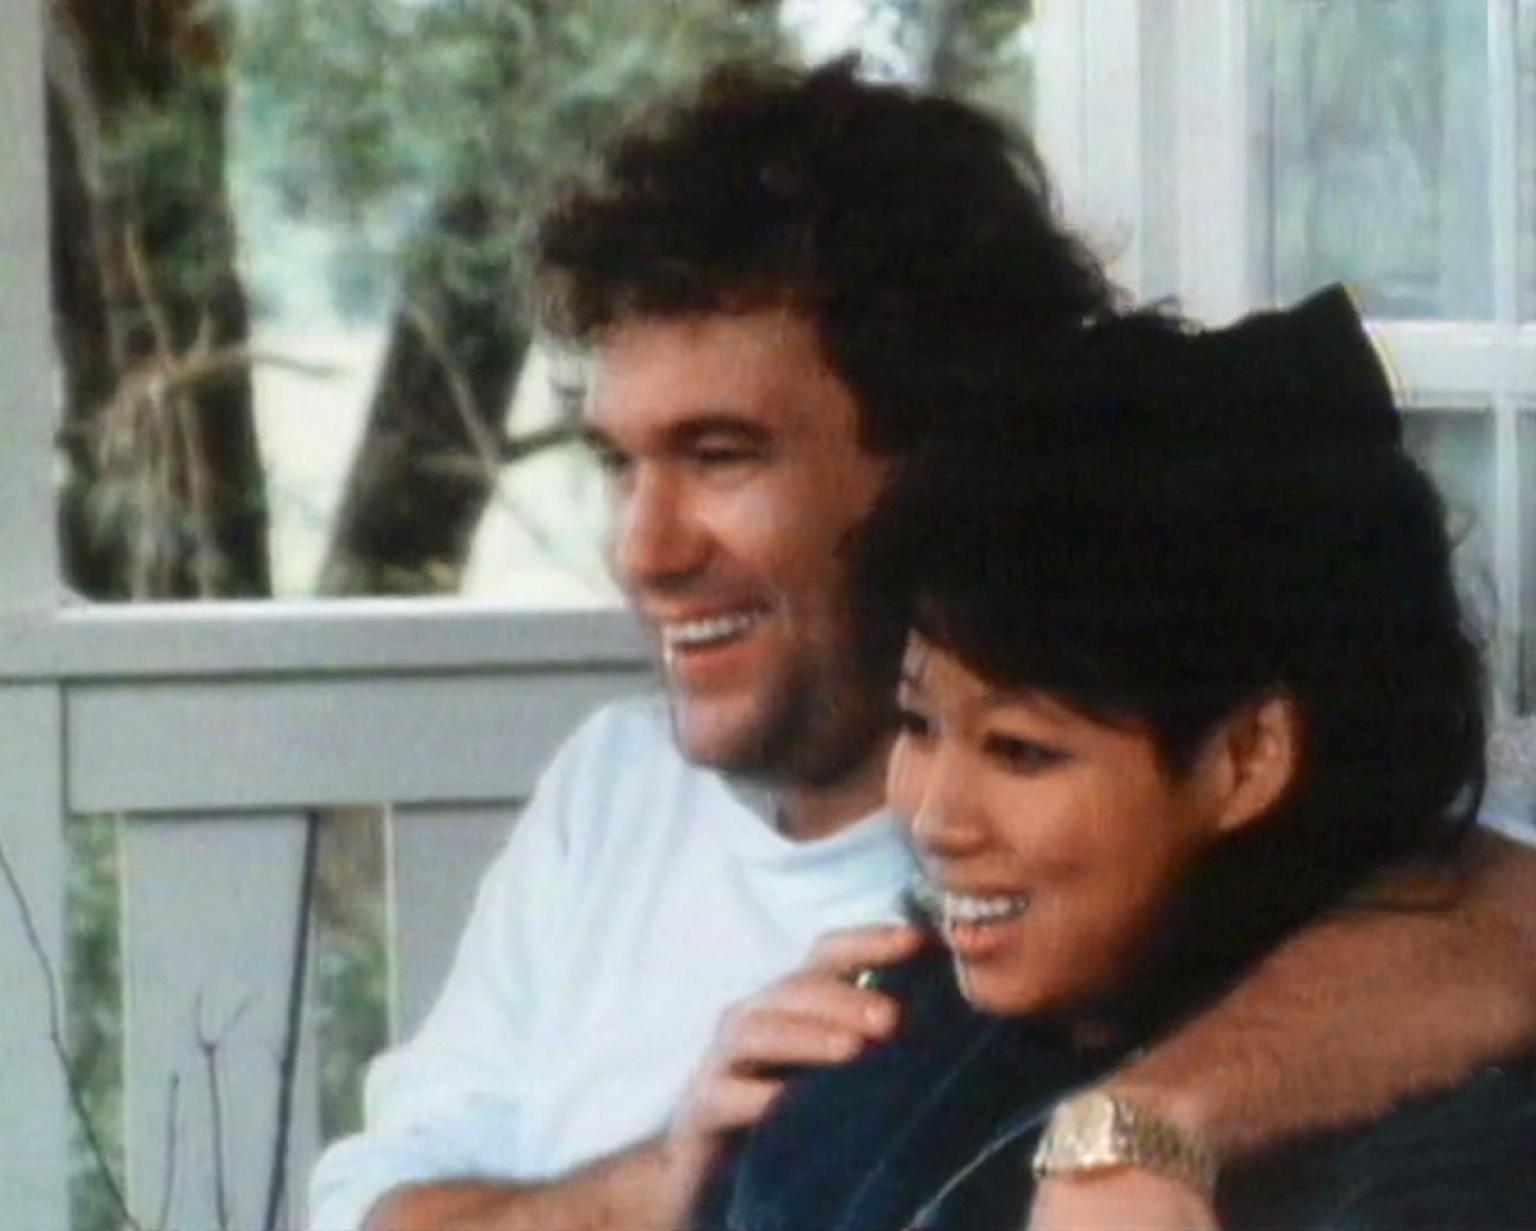 Jimmy Barnes, seated with his arm around his wife Jane. Both are smiling and facing to the left of screen. They appear to be seated outside on a front deck of a house.